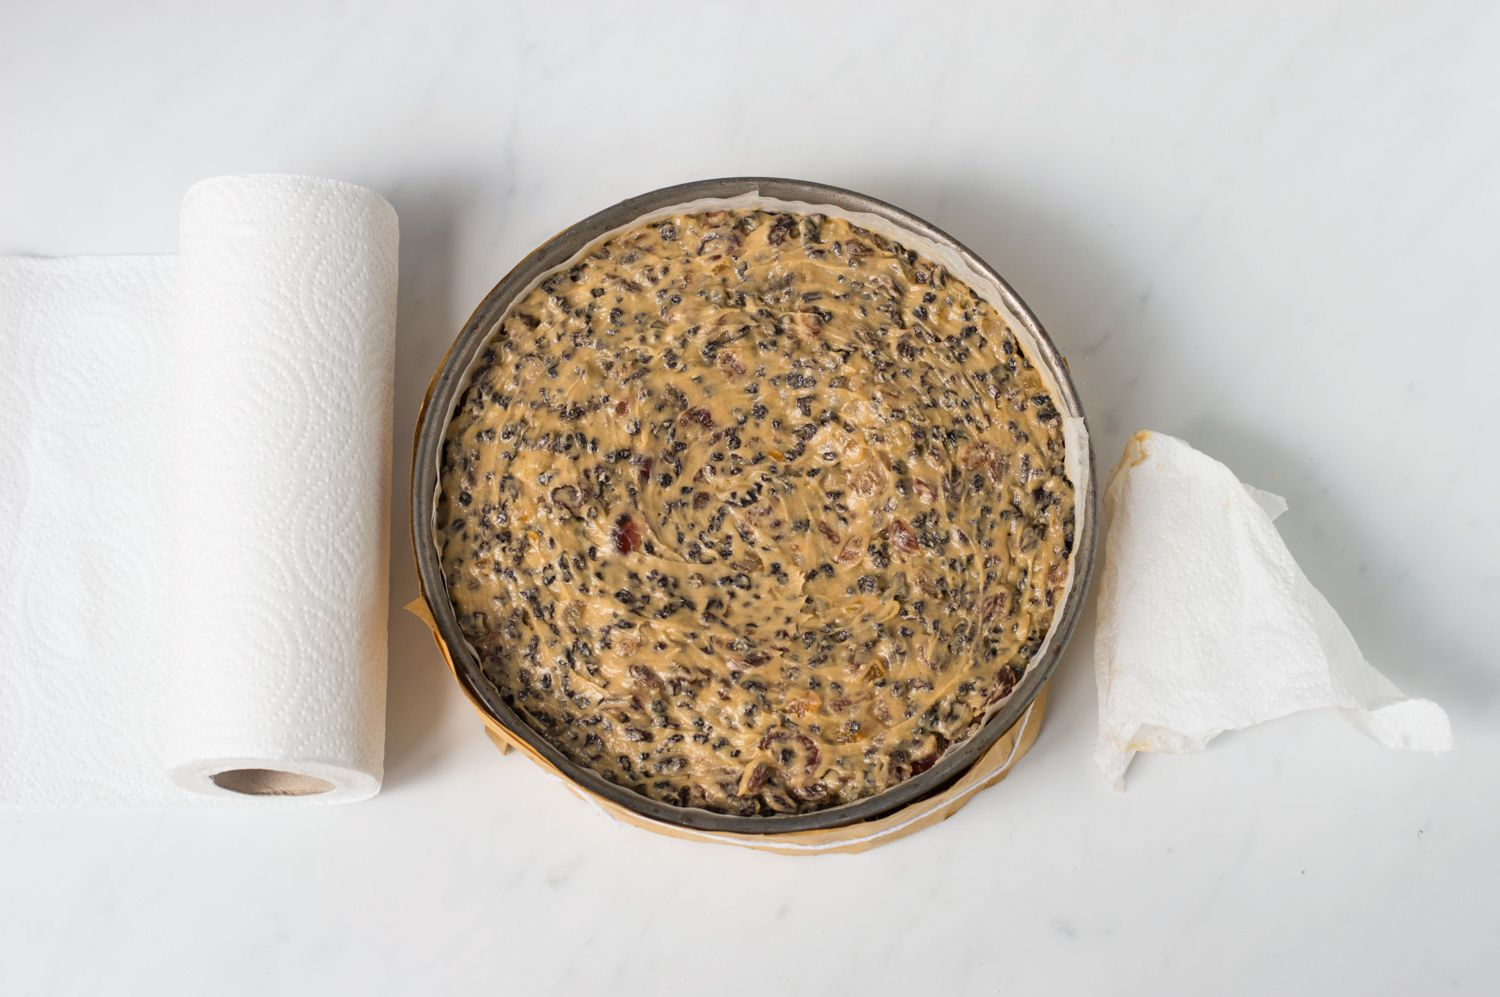 Christmas cake in pan with paper towels to remove excess batter